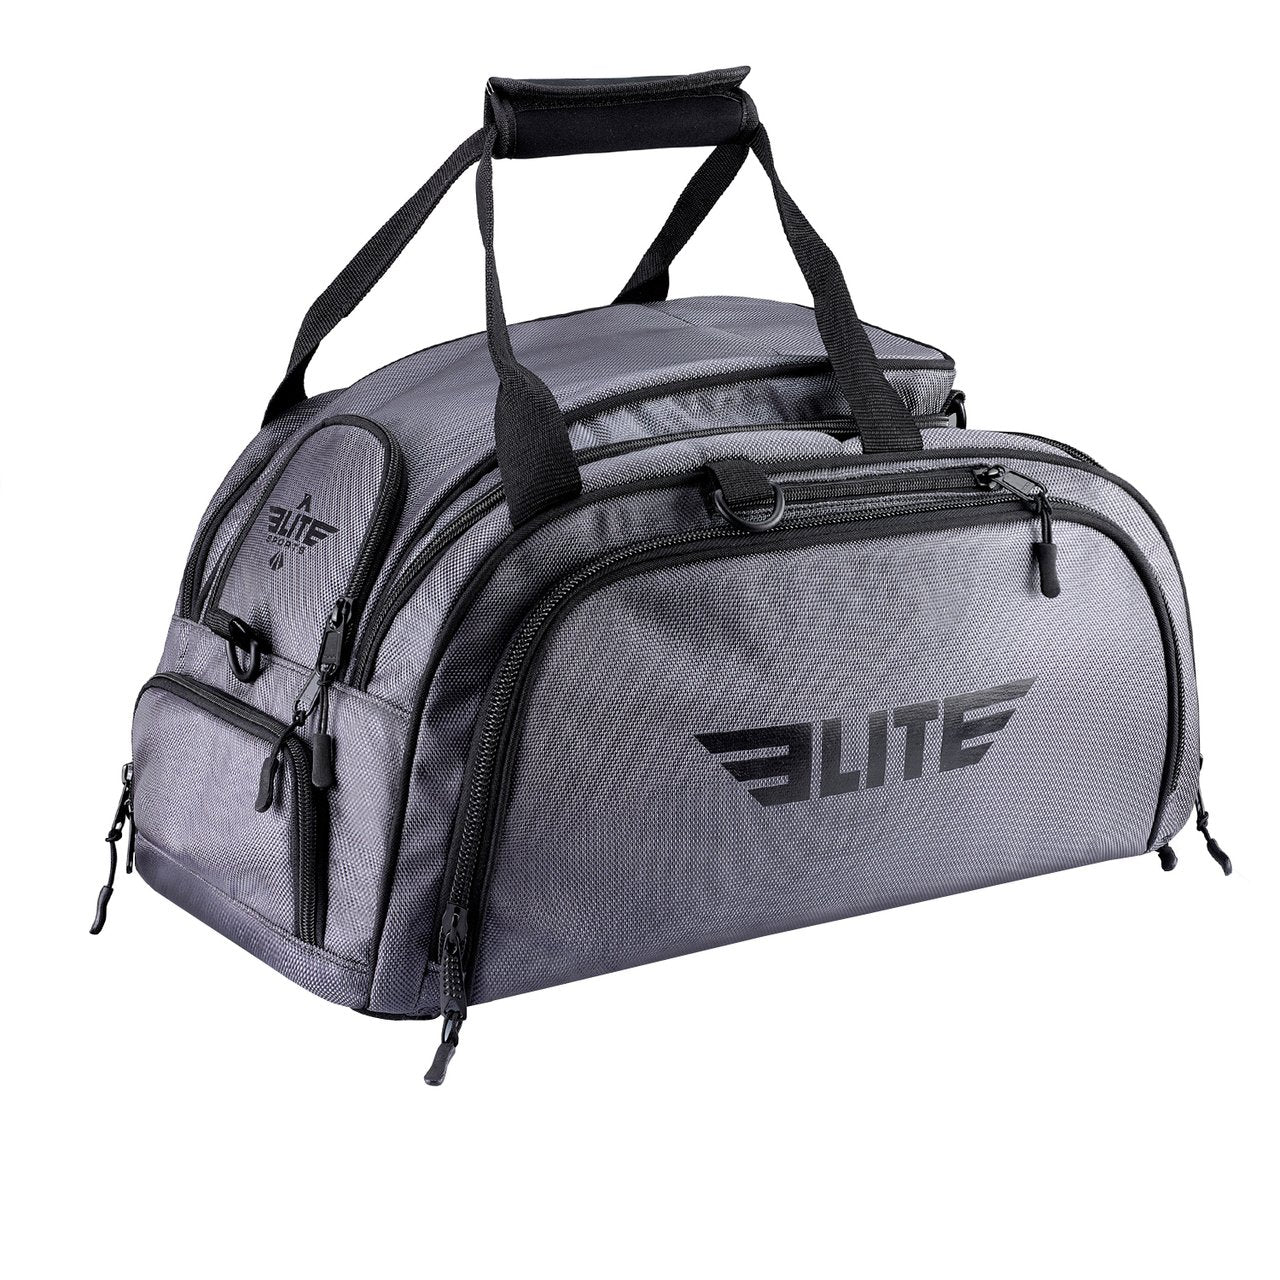 Load image into Gallery viewer, Elite Sports Warrior Series Gray Medium Duffel Wrestling Gear Gym Bag & Backpack